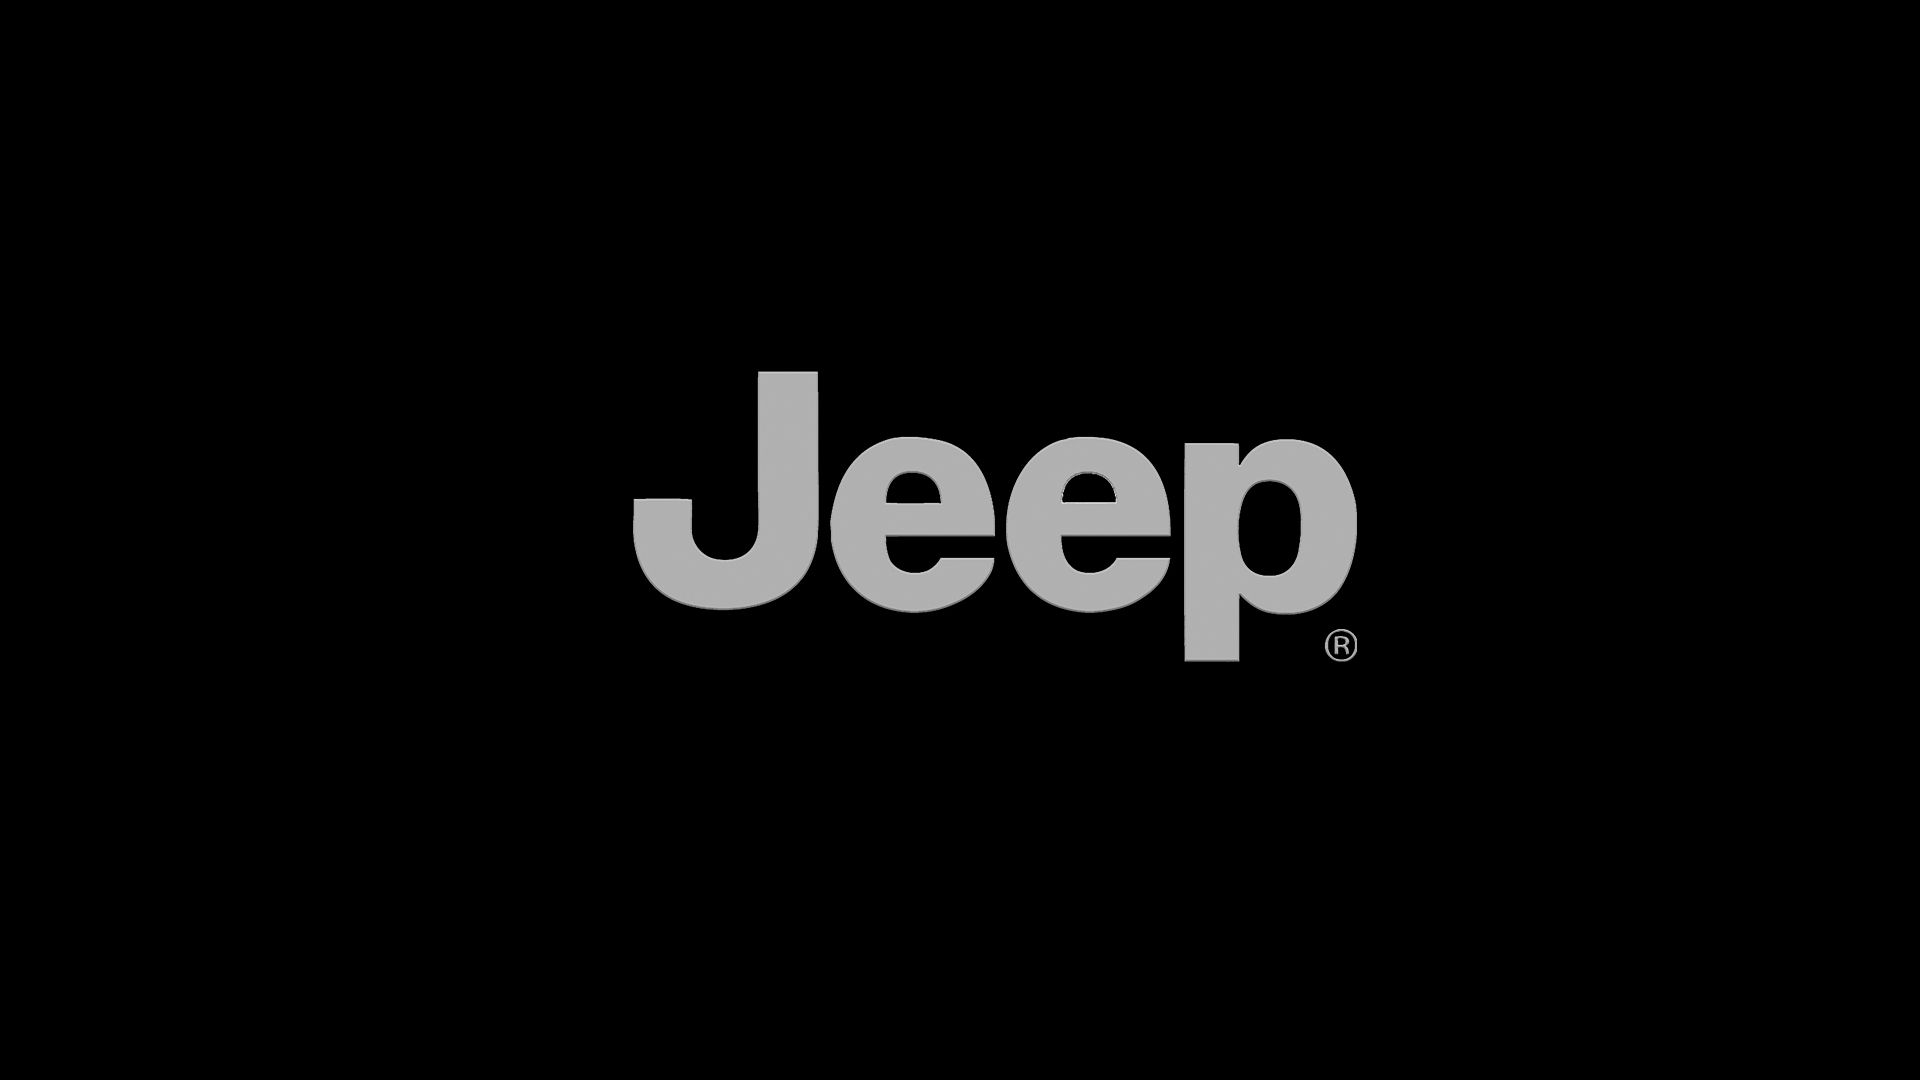 Jeep Logo Wallpapers Wallpapers Backgrounds Images Art Photos